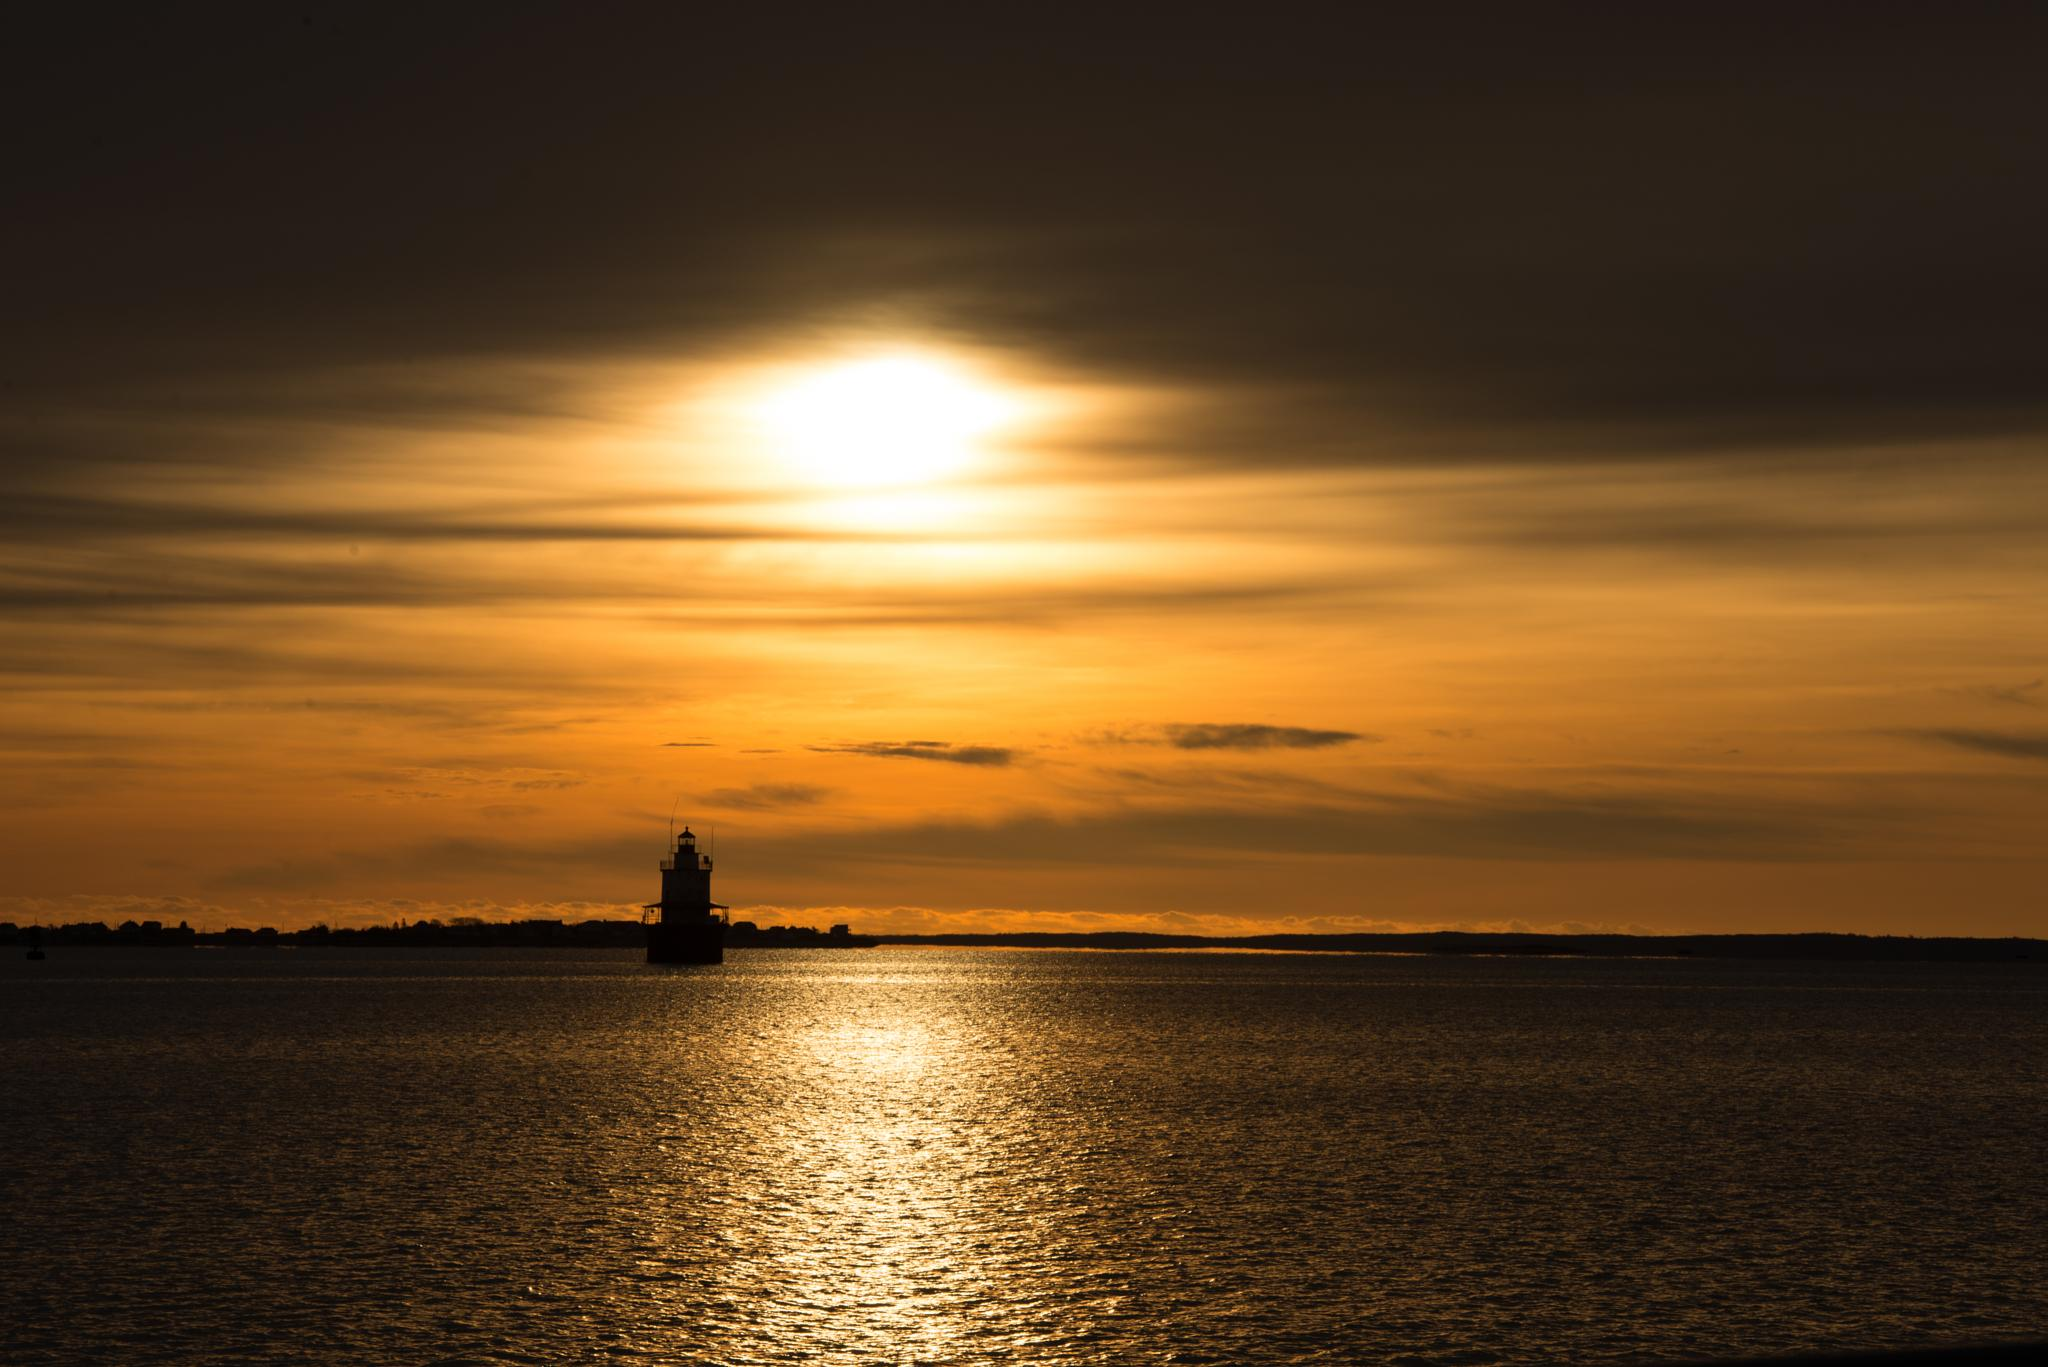 sunrise in New Bedford, MA by jamesmerecki